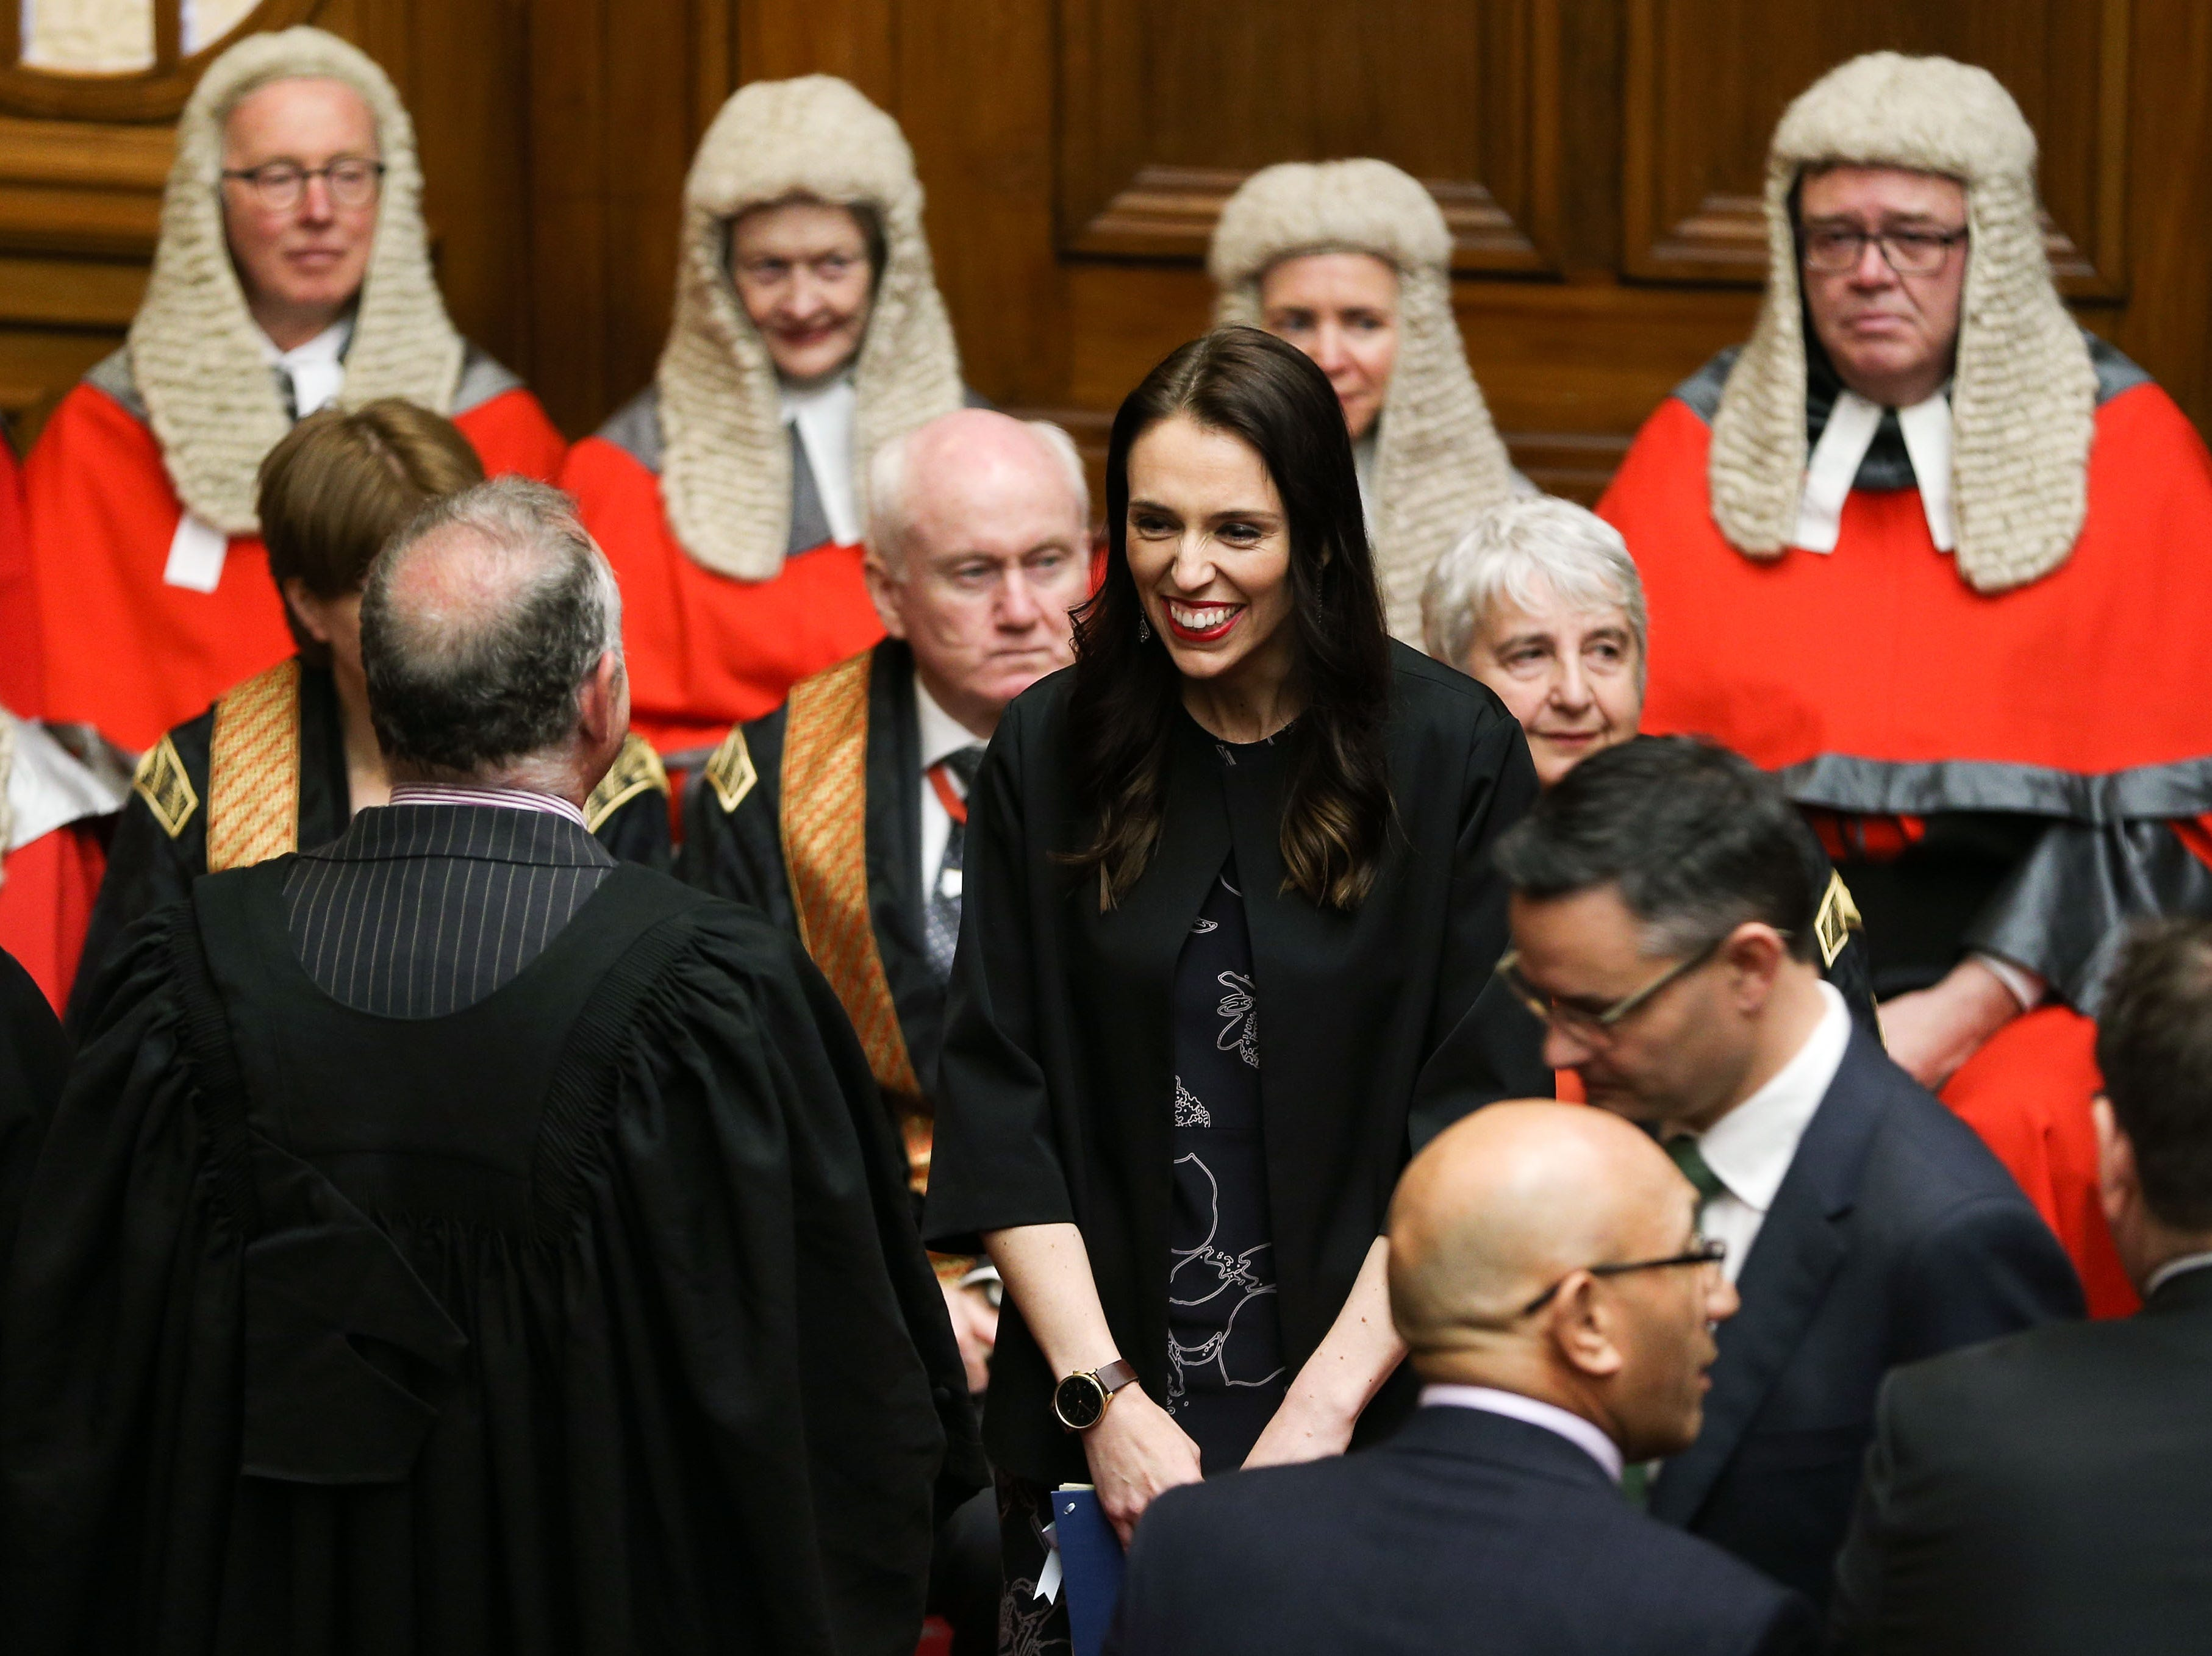 Prime Minister Jacinda Ardern enjoys a laugh during the State Opening of Parliament on Nov. 8, 2017 in Wellington, New Zealand. Labour leader Jacinda Ardern was sworn in on October 26, as the 40th Prime Minister of New Zealand.